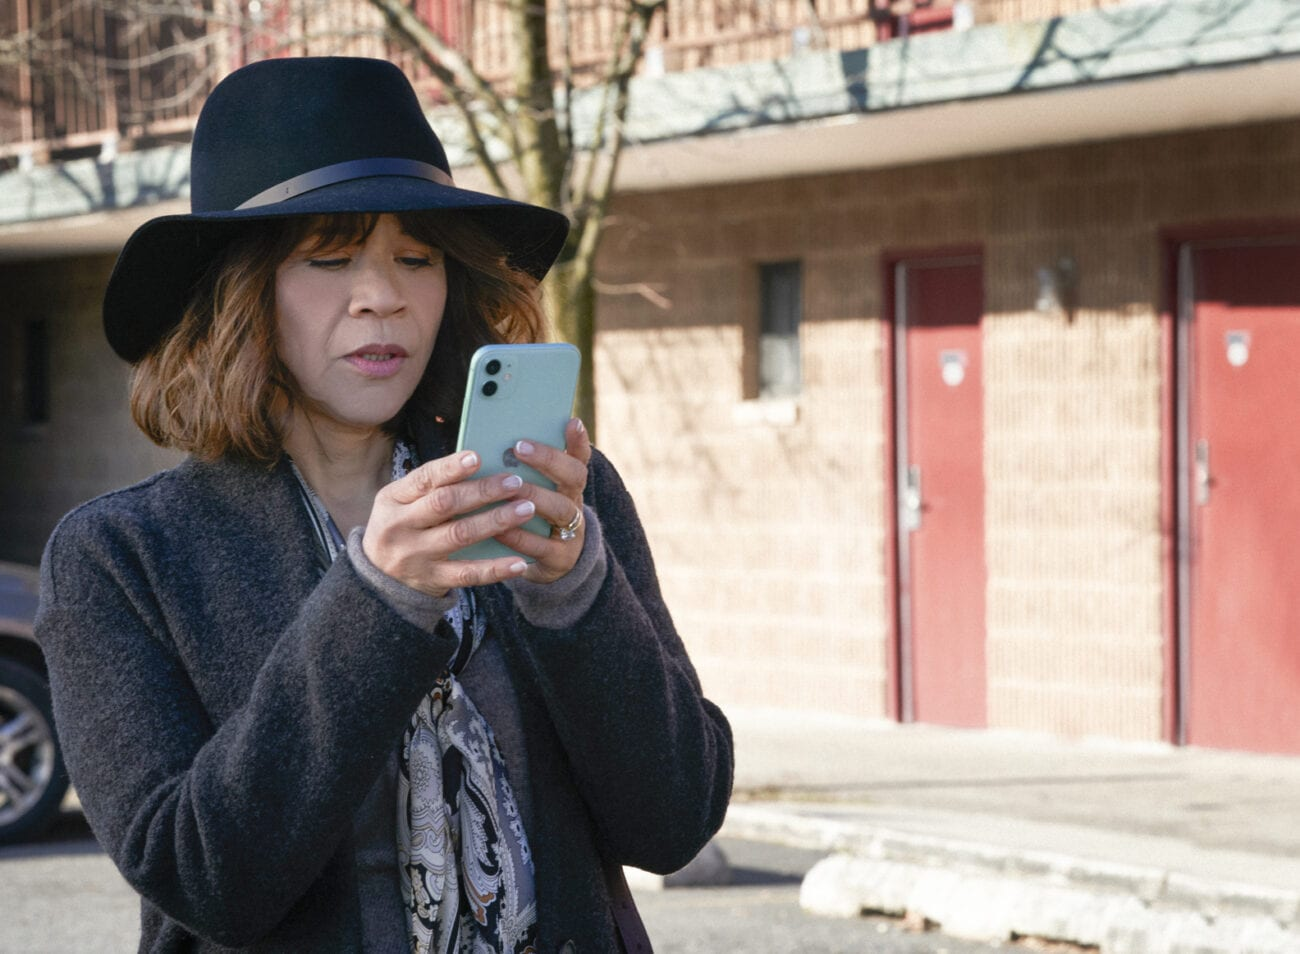 Megan texts on her phone while waiting at a motel.